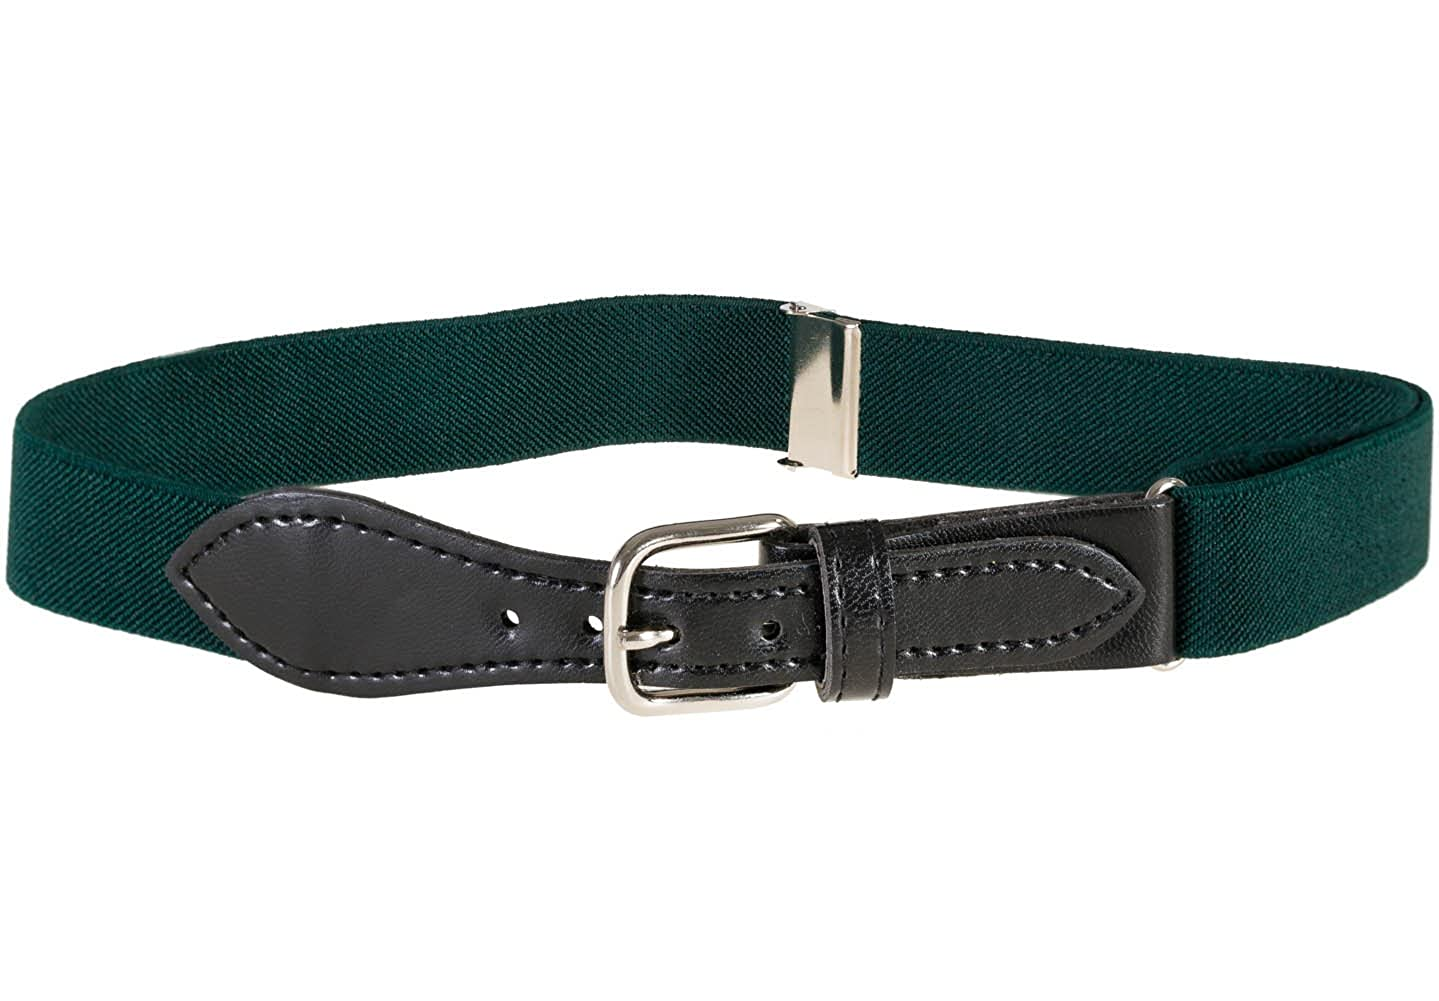 Kids Elastic Adjustable Strech Belt with Leather Closure (Available in 30 Colors)